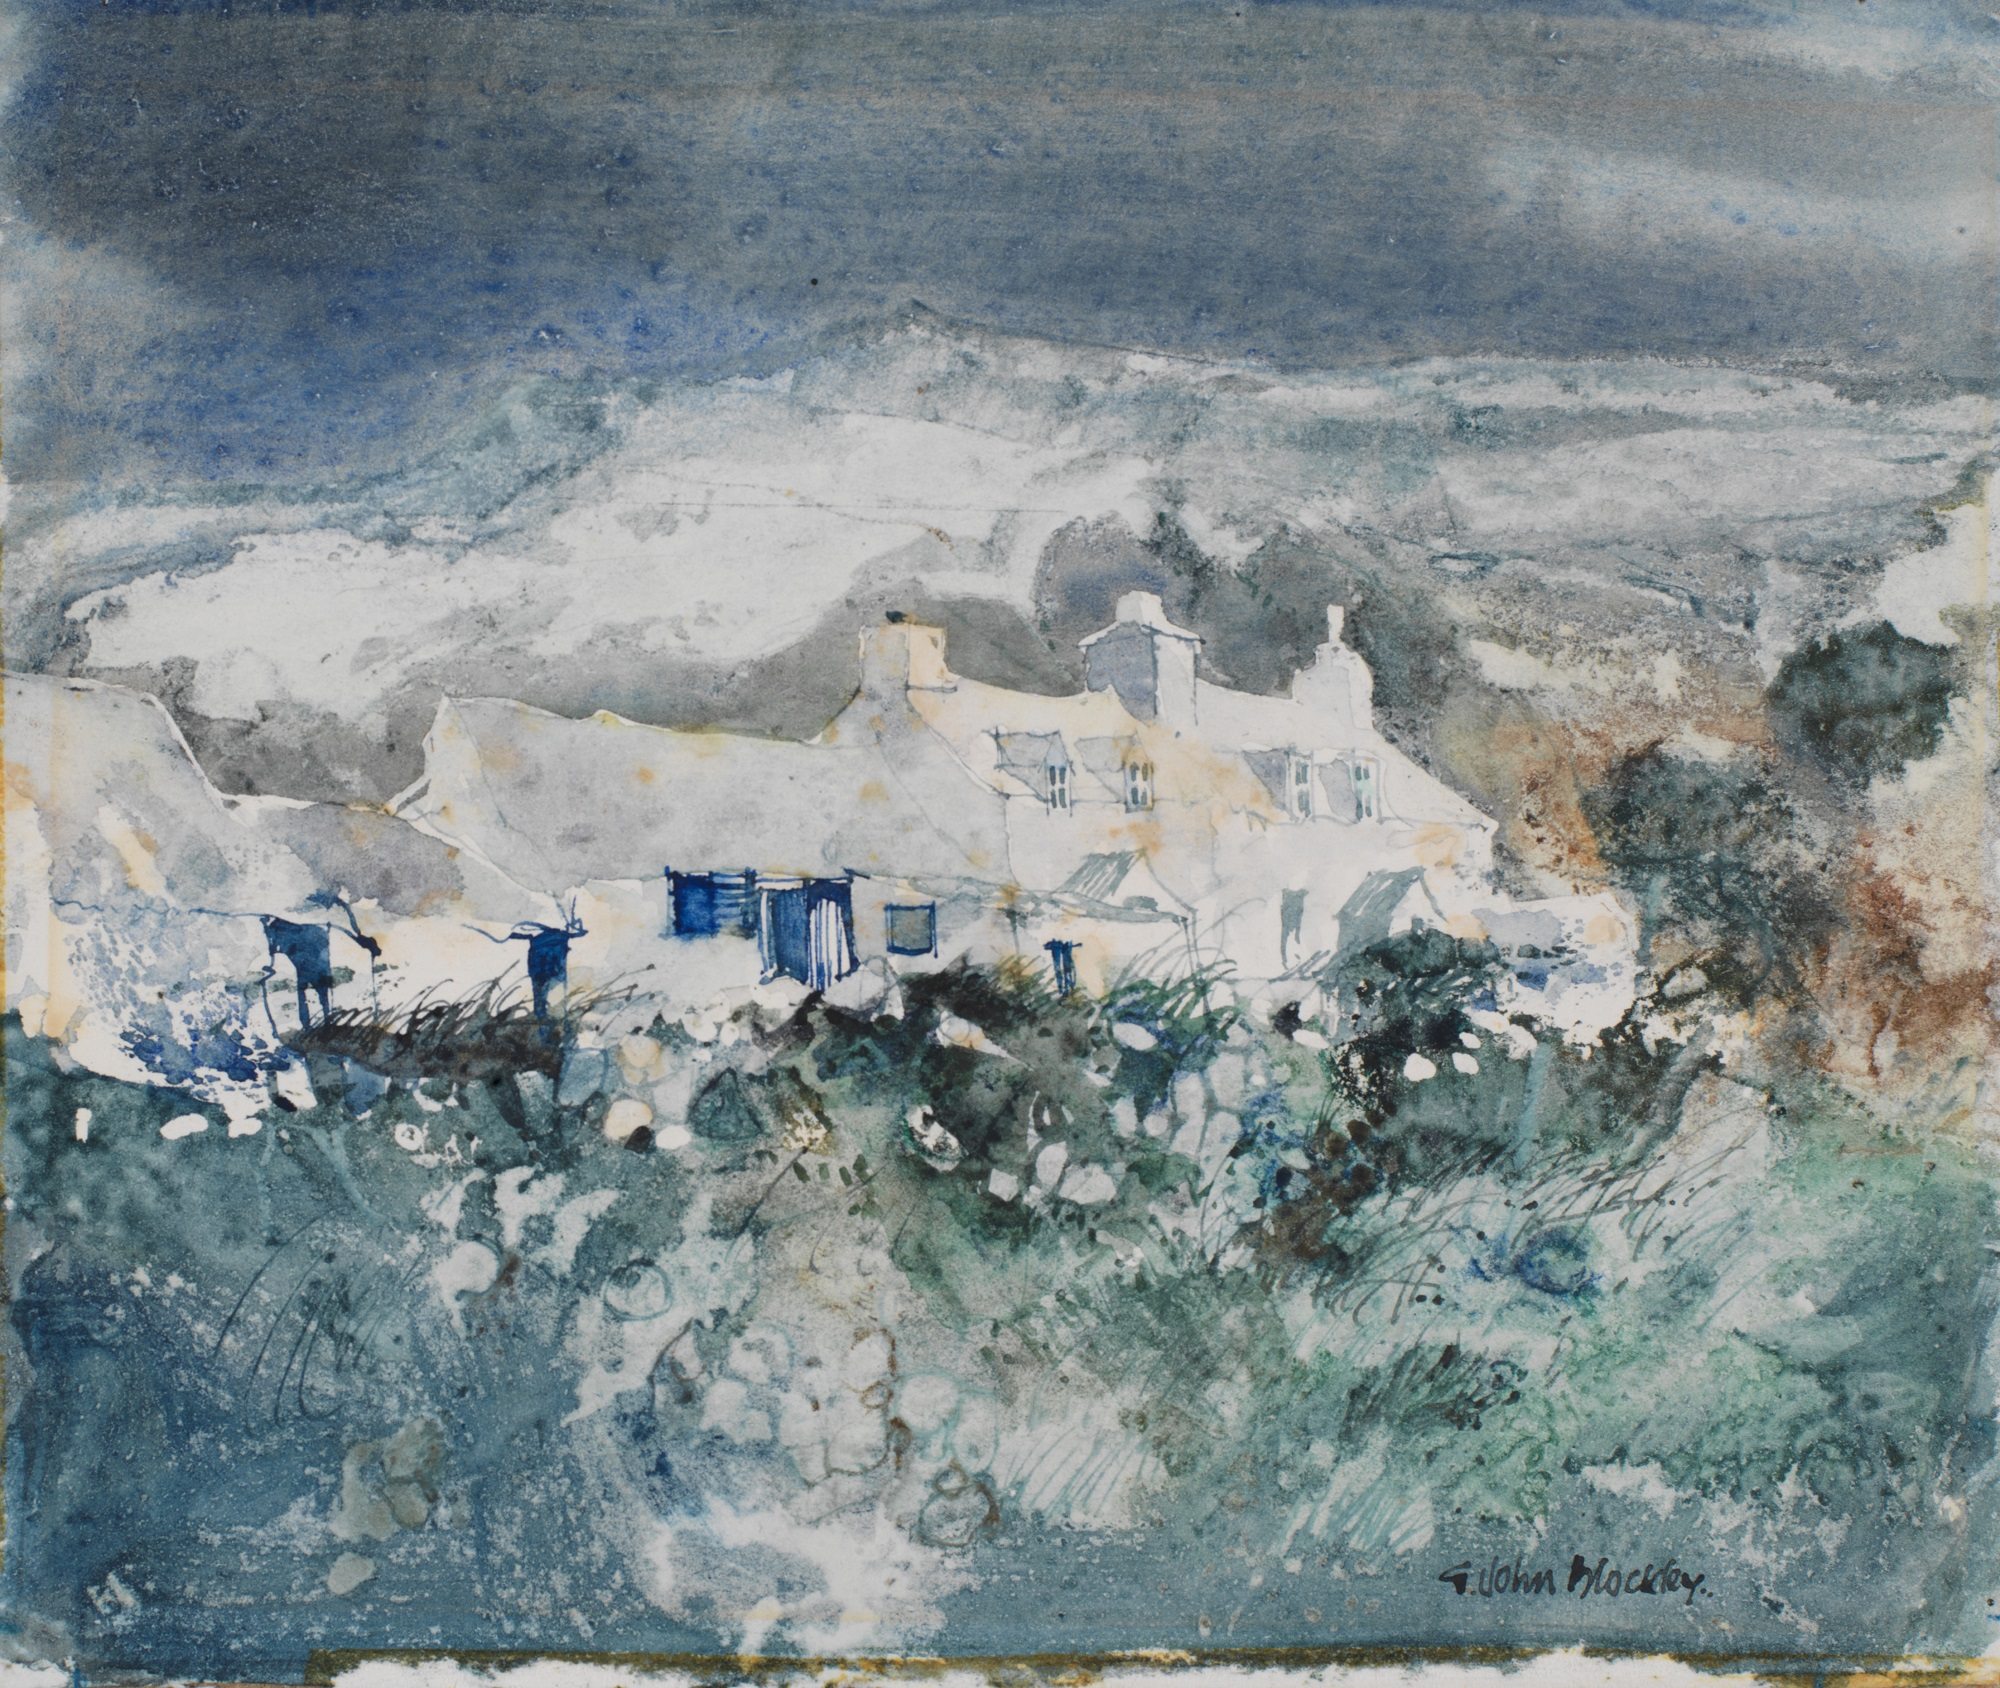 Pembrokeshire Cottages John Blockley Watercolour, c.1988, art exhibitions on in September